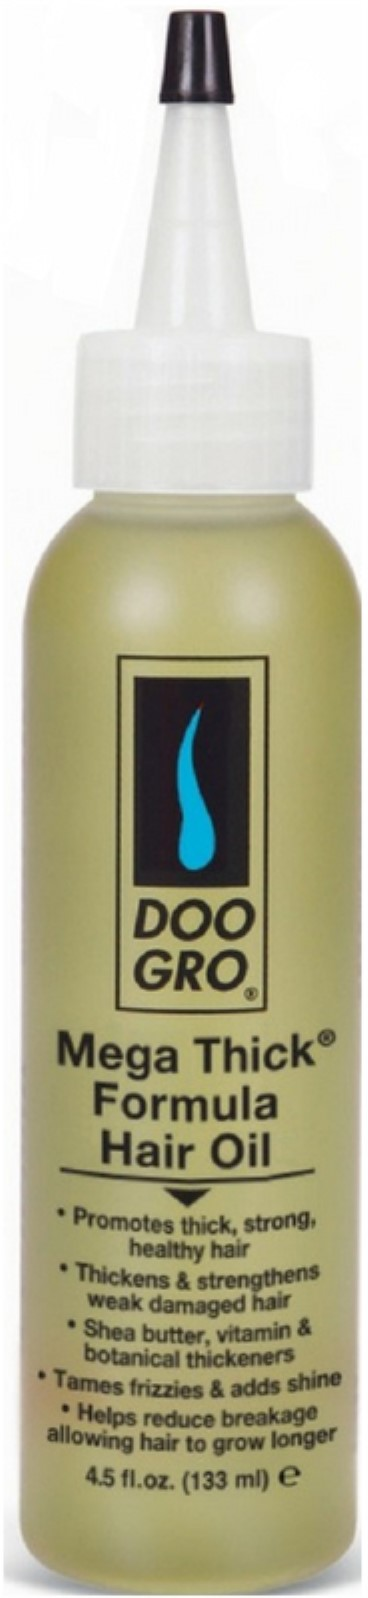 DOO GRO® MEGA THICK FORMULA HAIR OIL – Walmart Inventory